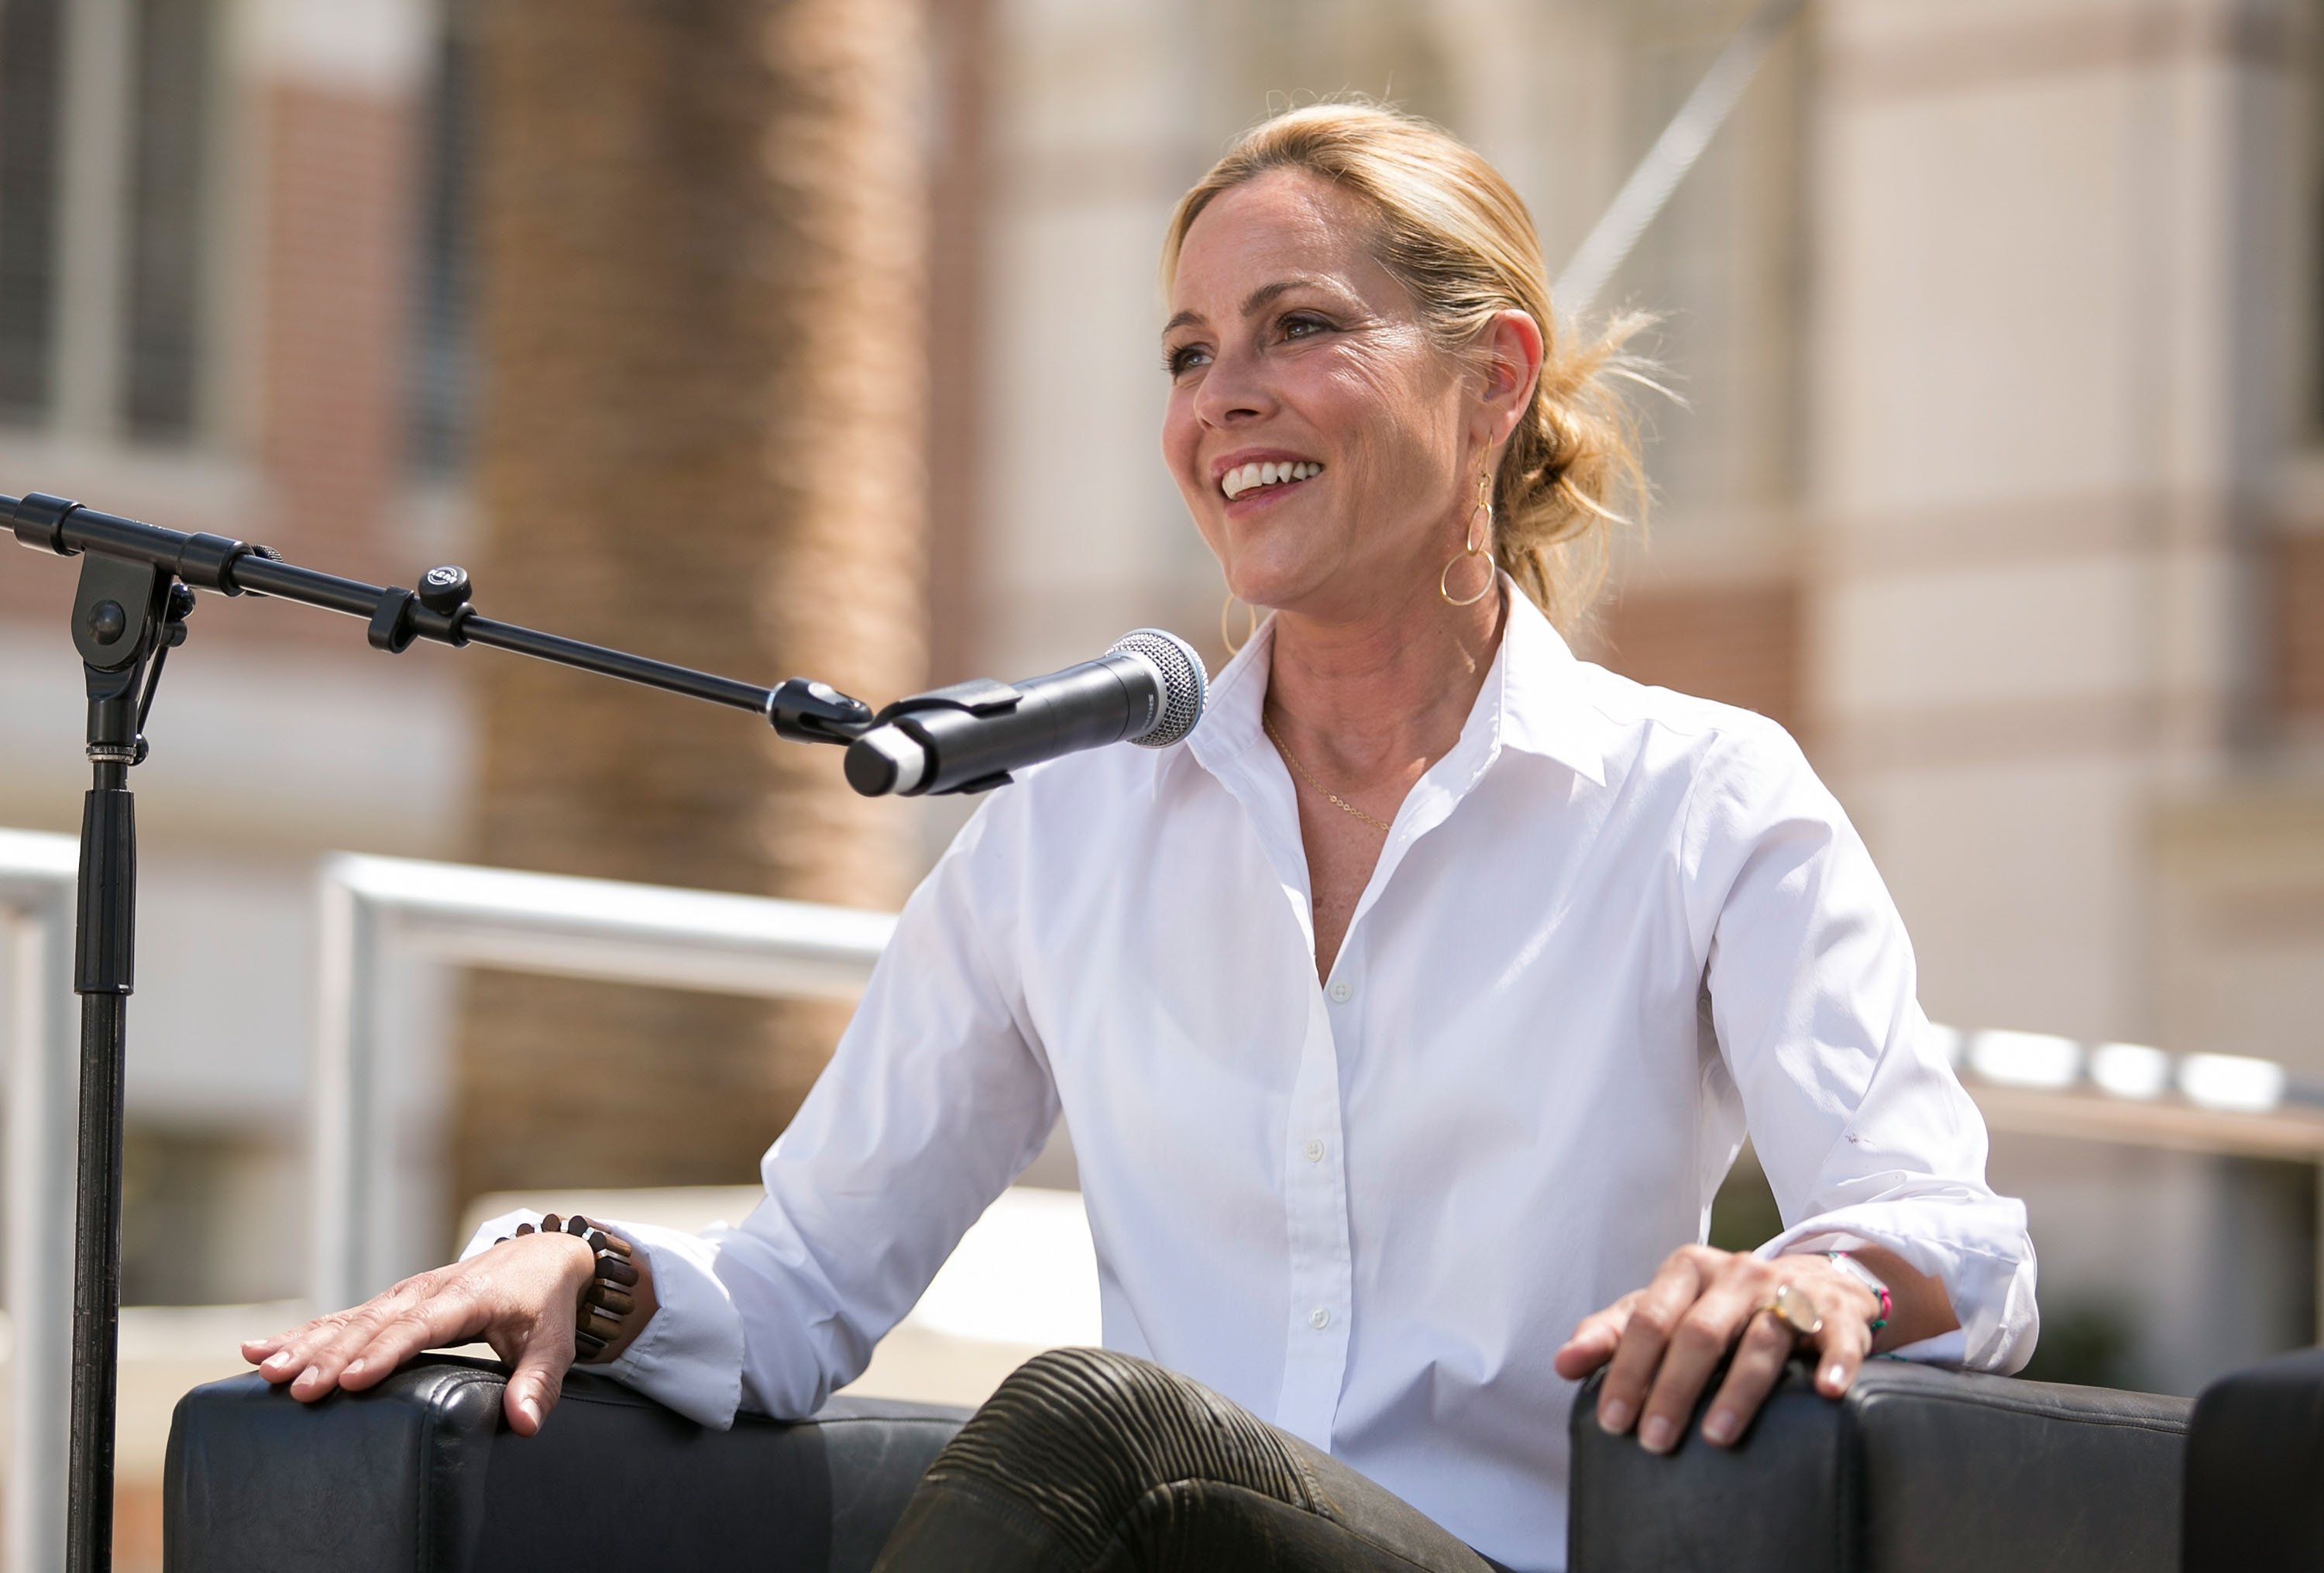 Maria Bello attends the 2015 Los Angeles Times Festival of Books at USC on April 18, 2015 | Photo: GettyImages